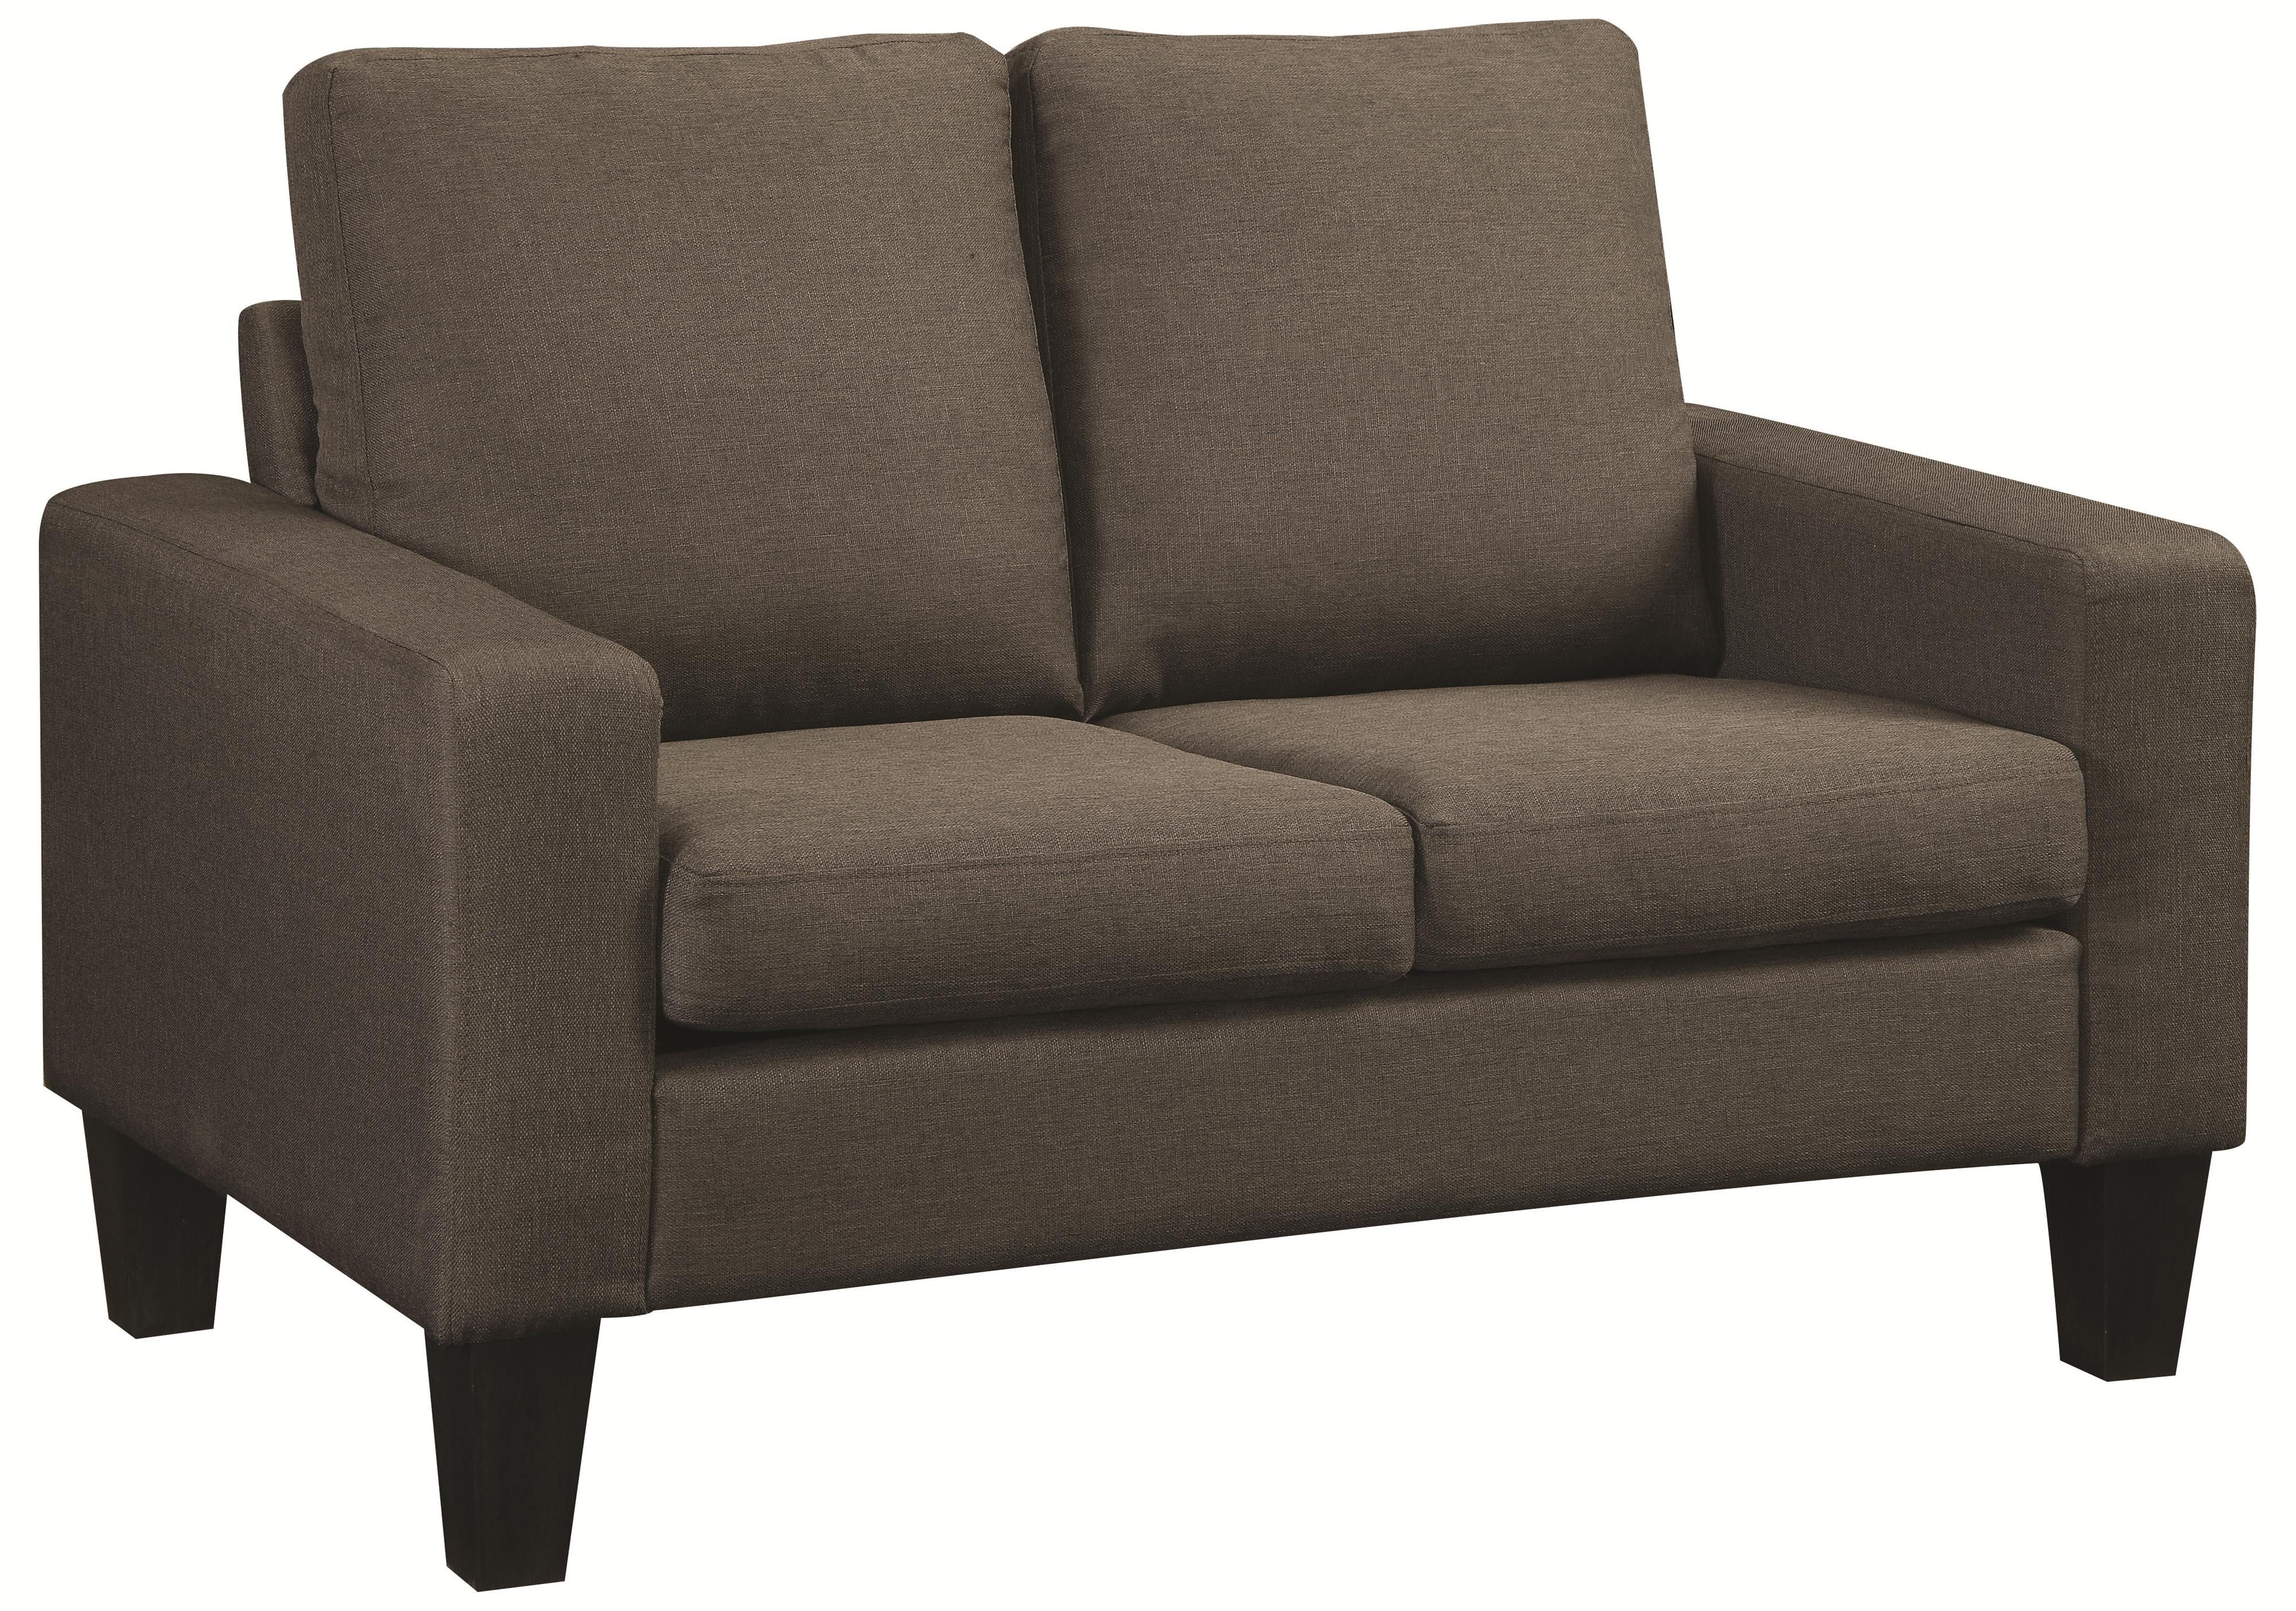 Coaster Bachman Love Seat - Item Number: 504765-Grey Linen